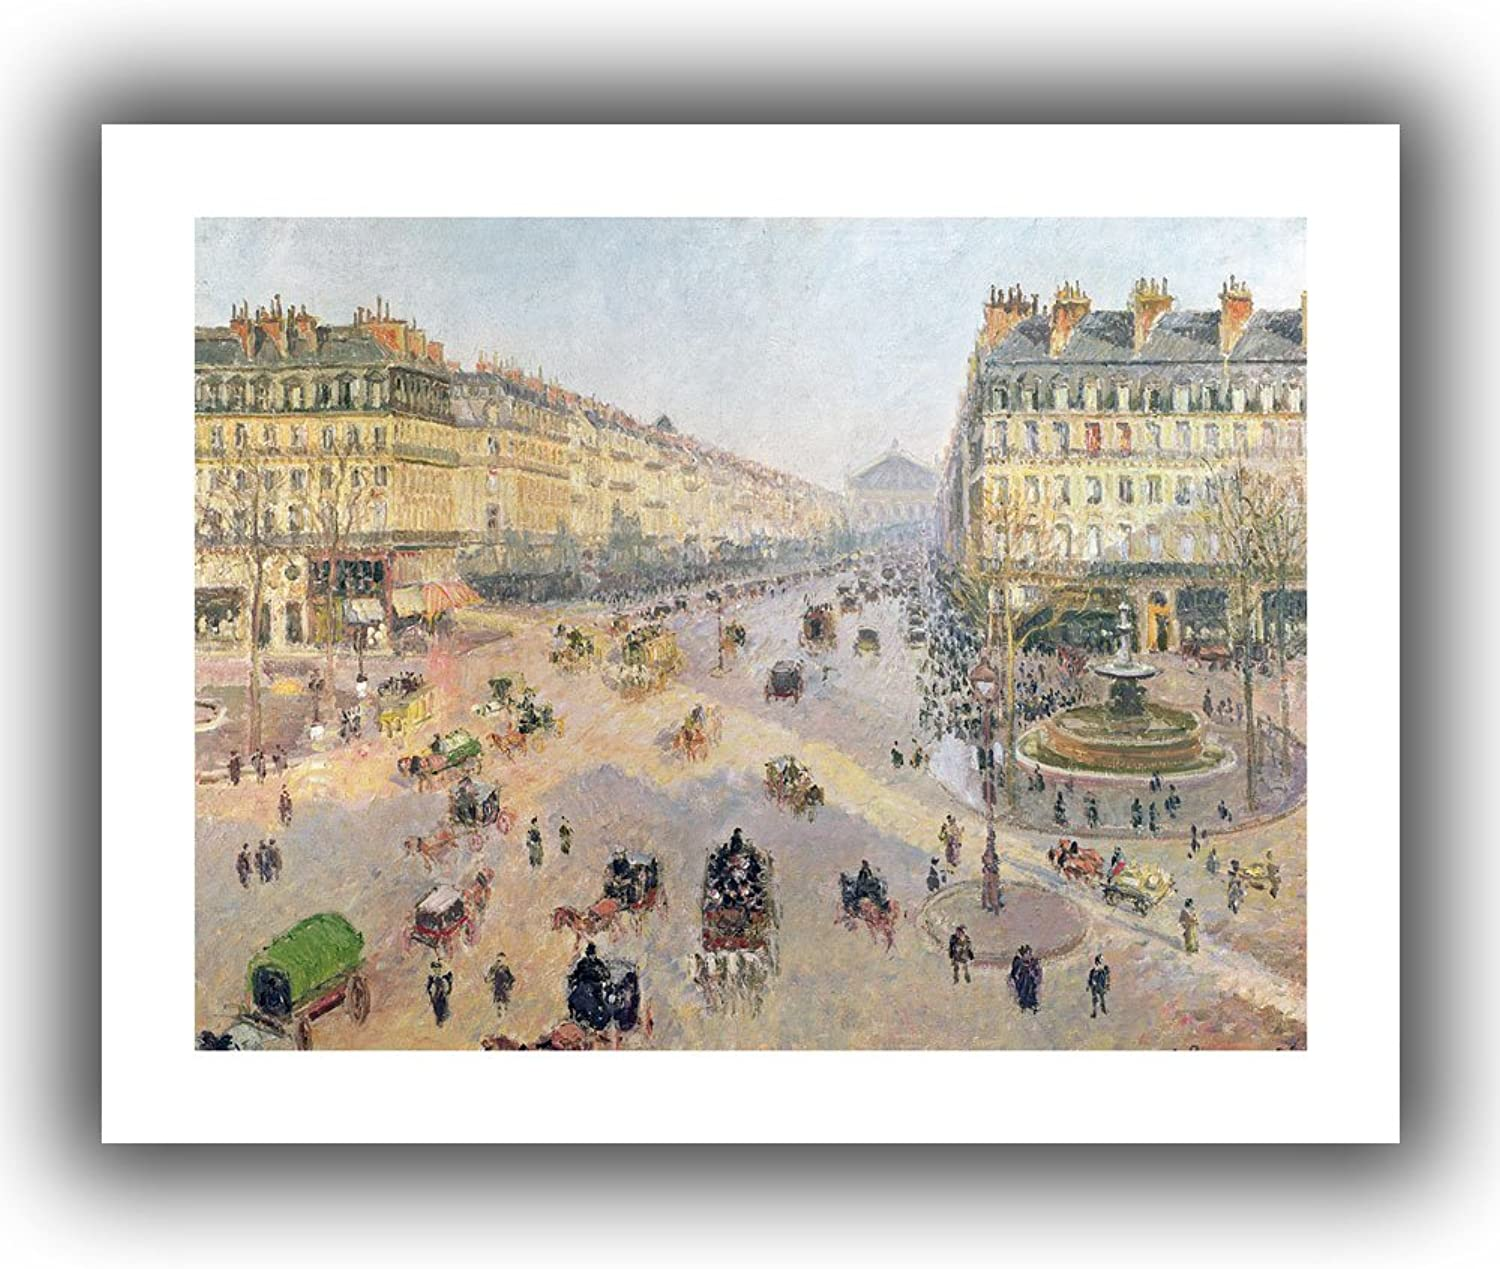 Art Wall The Avenue de L'Opera, Paris, Sunlight, Winter Morning  Unwrapped Canvas Art by Camille Pissarro, 18 by 22-Inch